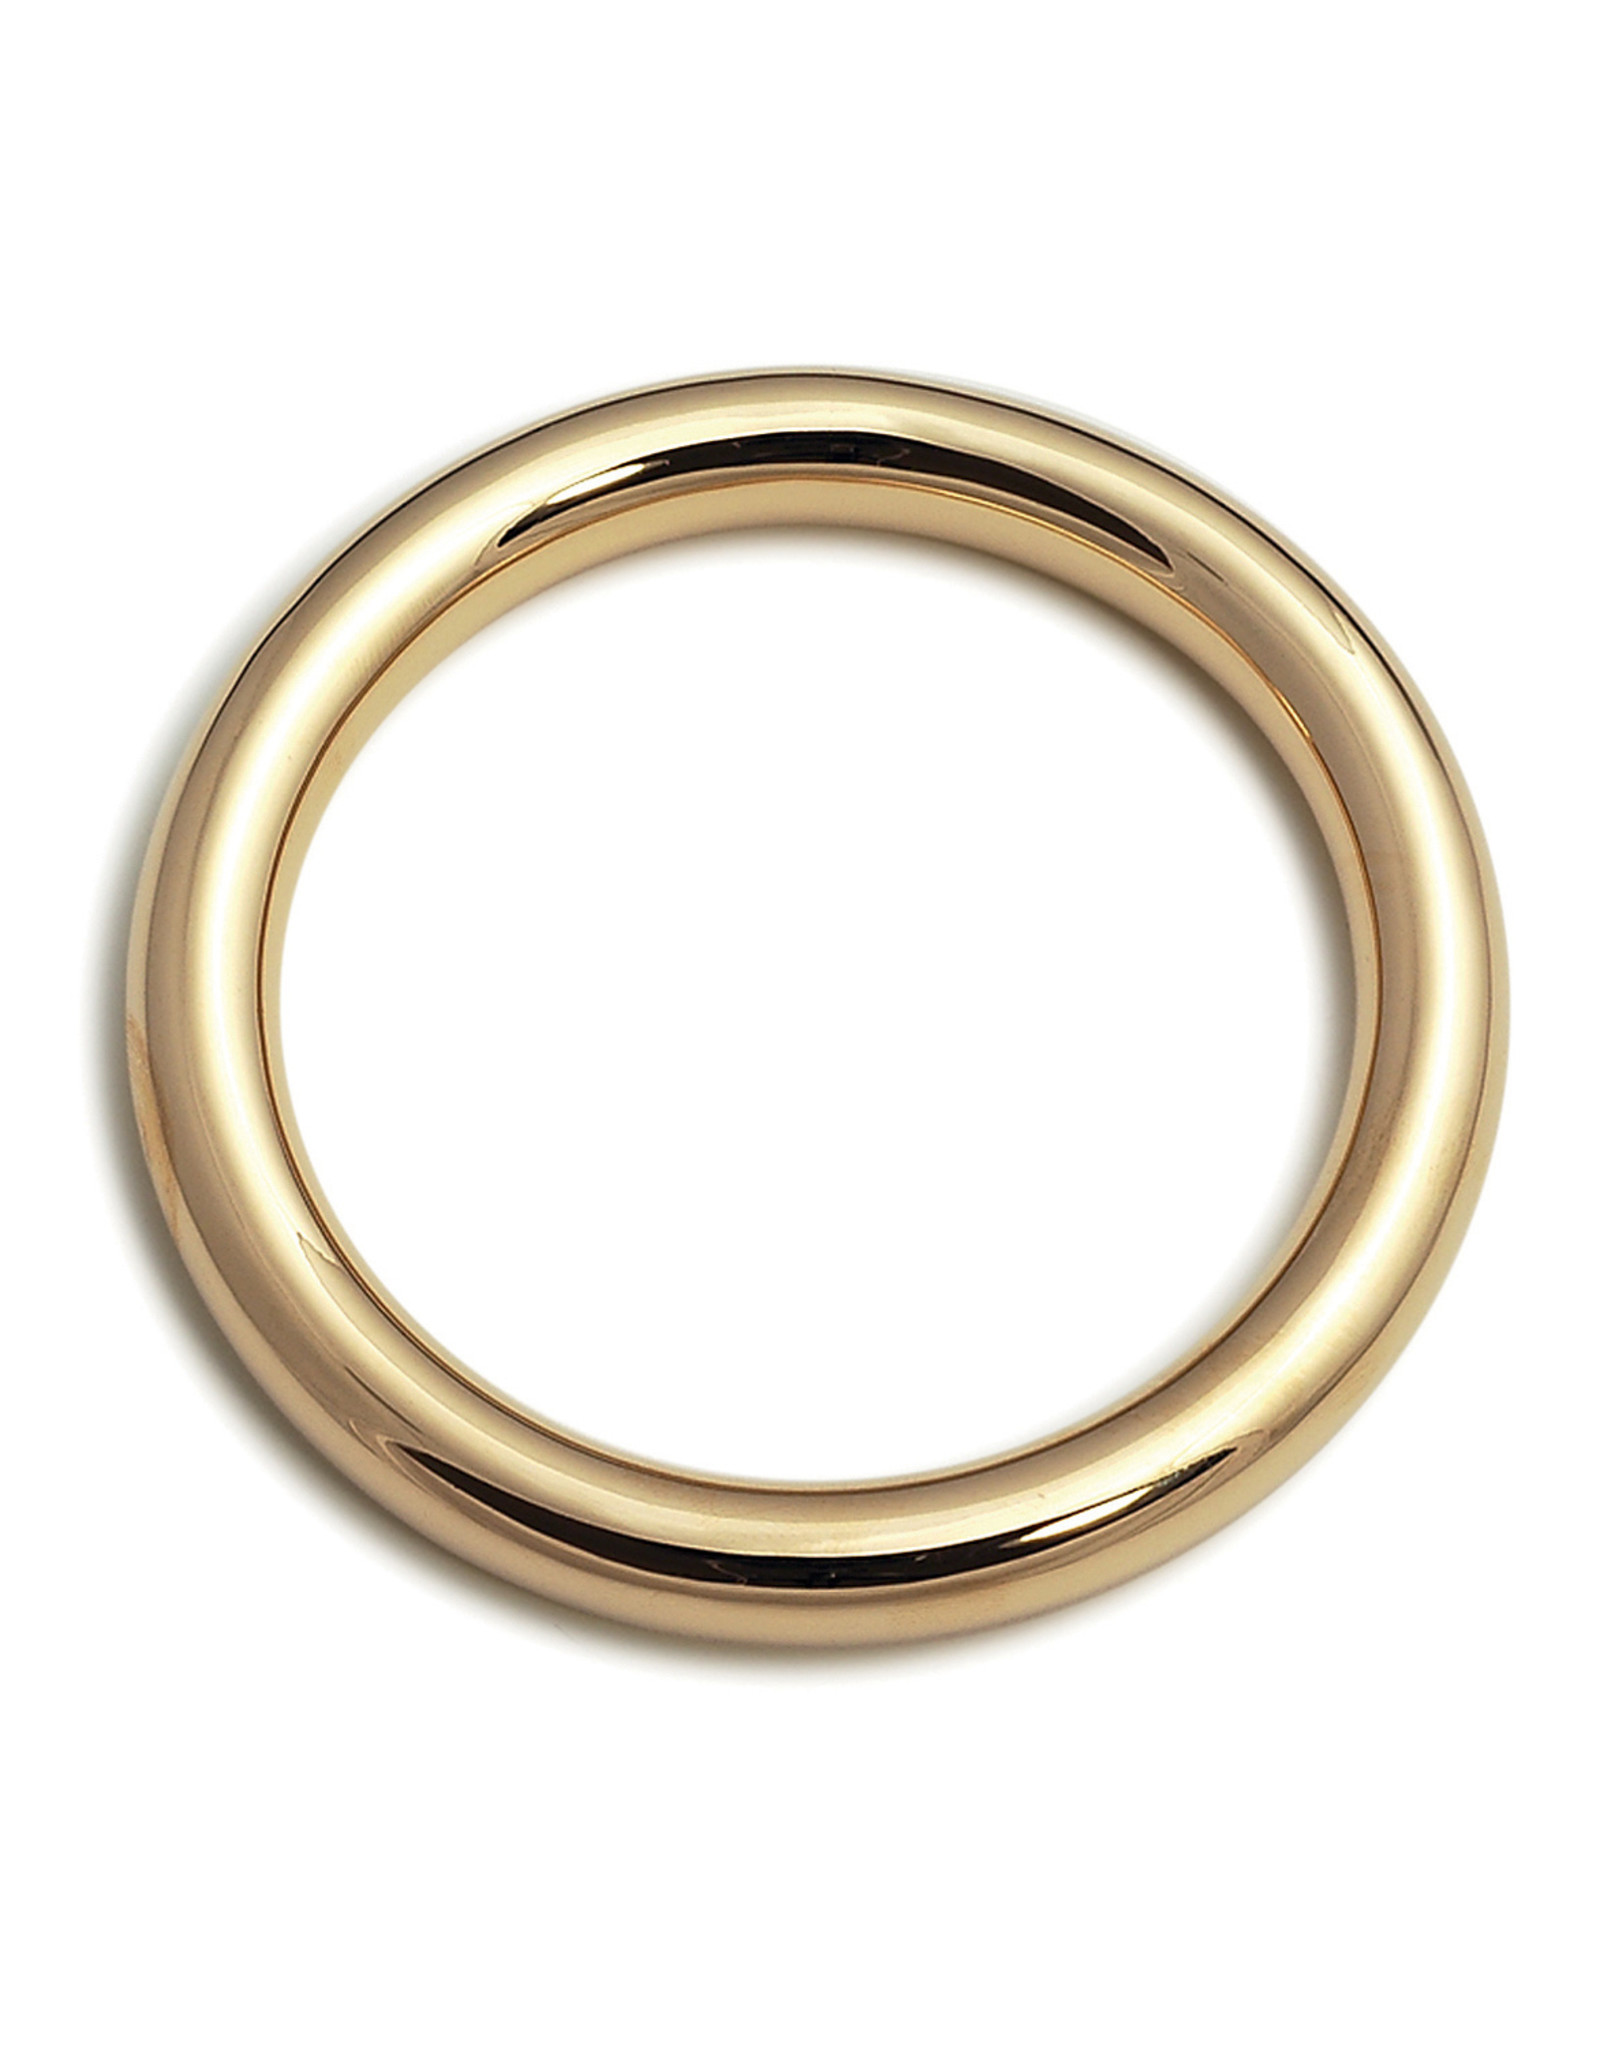 VON TRESKOW Y/GOLD 10MM GOLF BANGLE